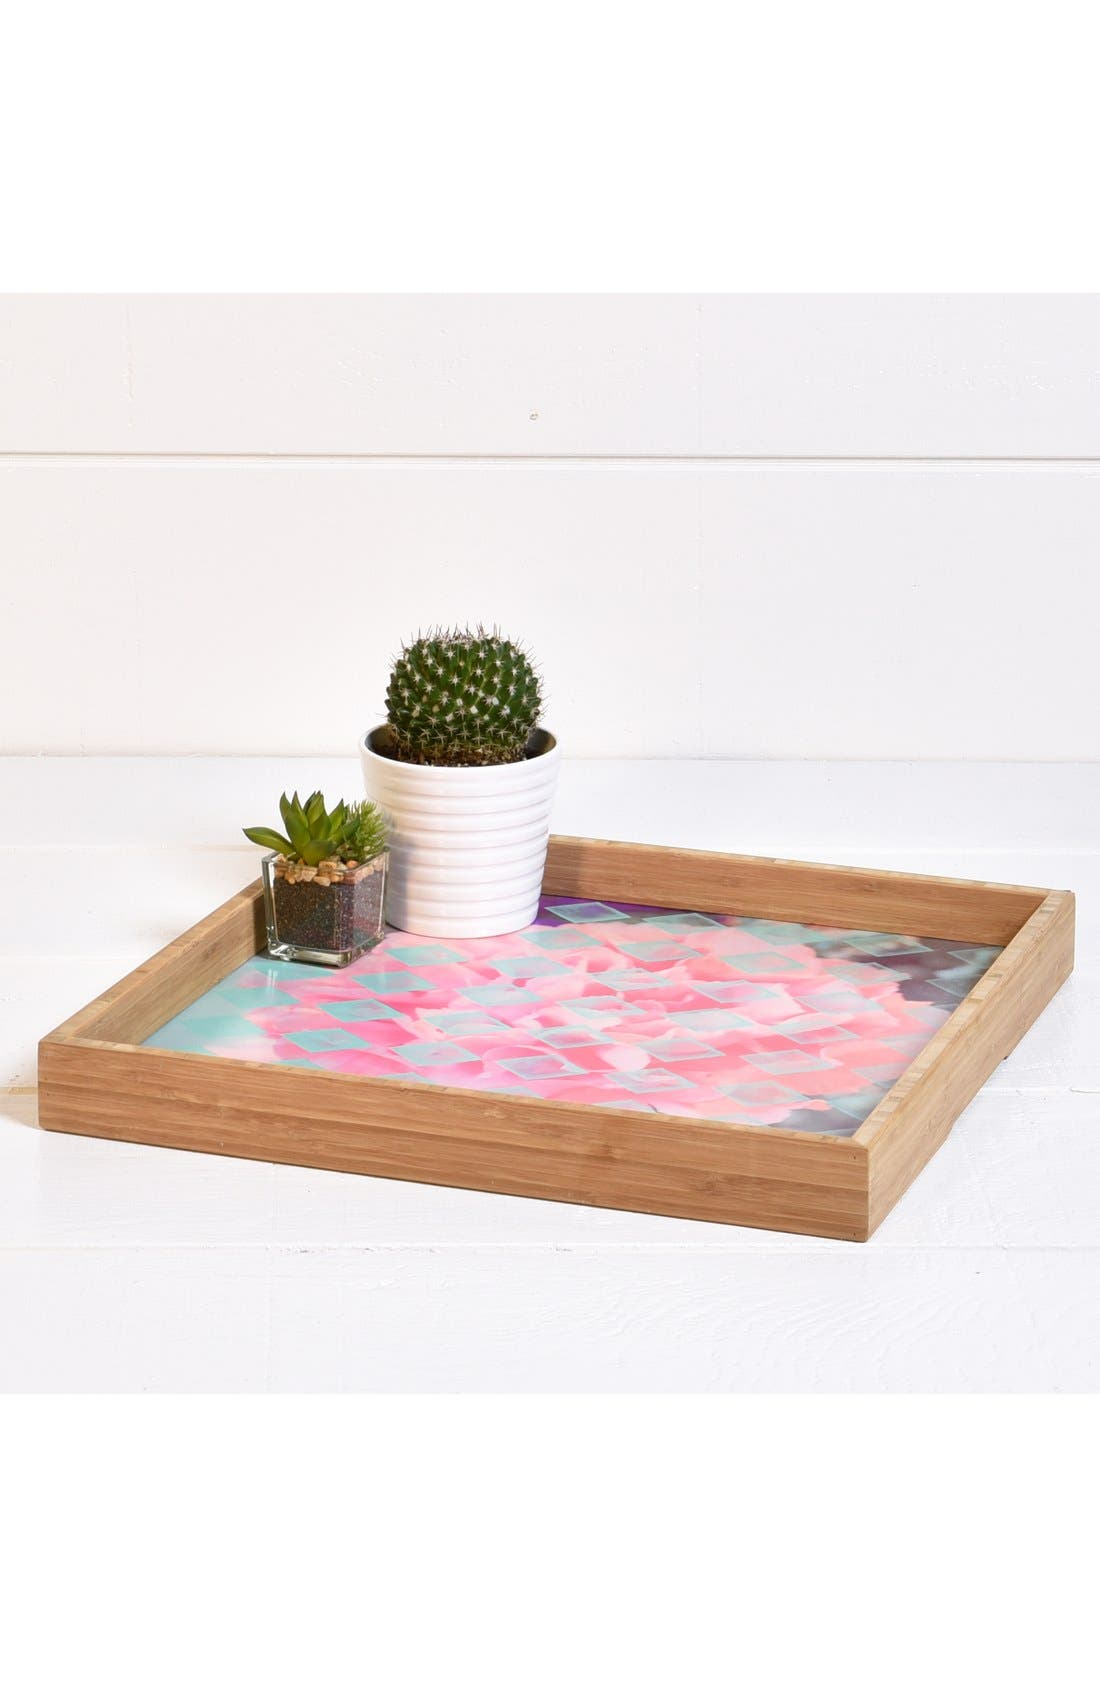 'Floral Diamonds' Decorative Serving Tray,                             Alternate thumbnail 2, color,                             Pink